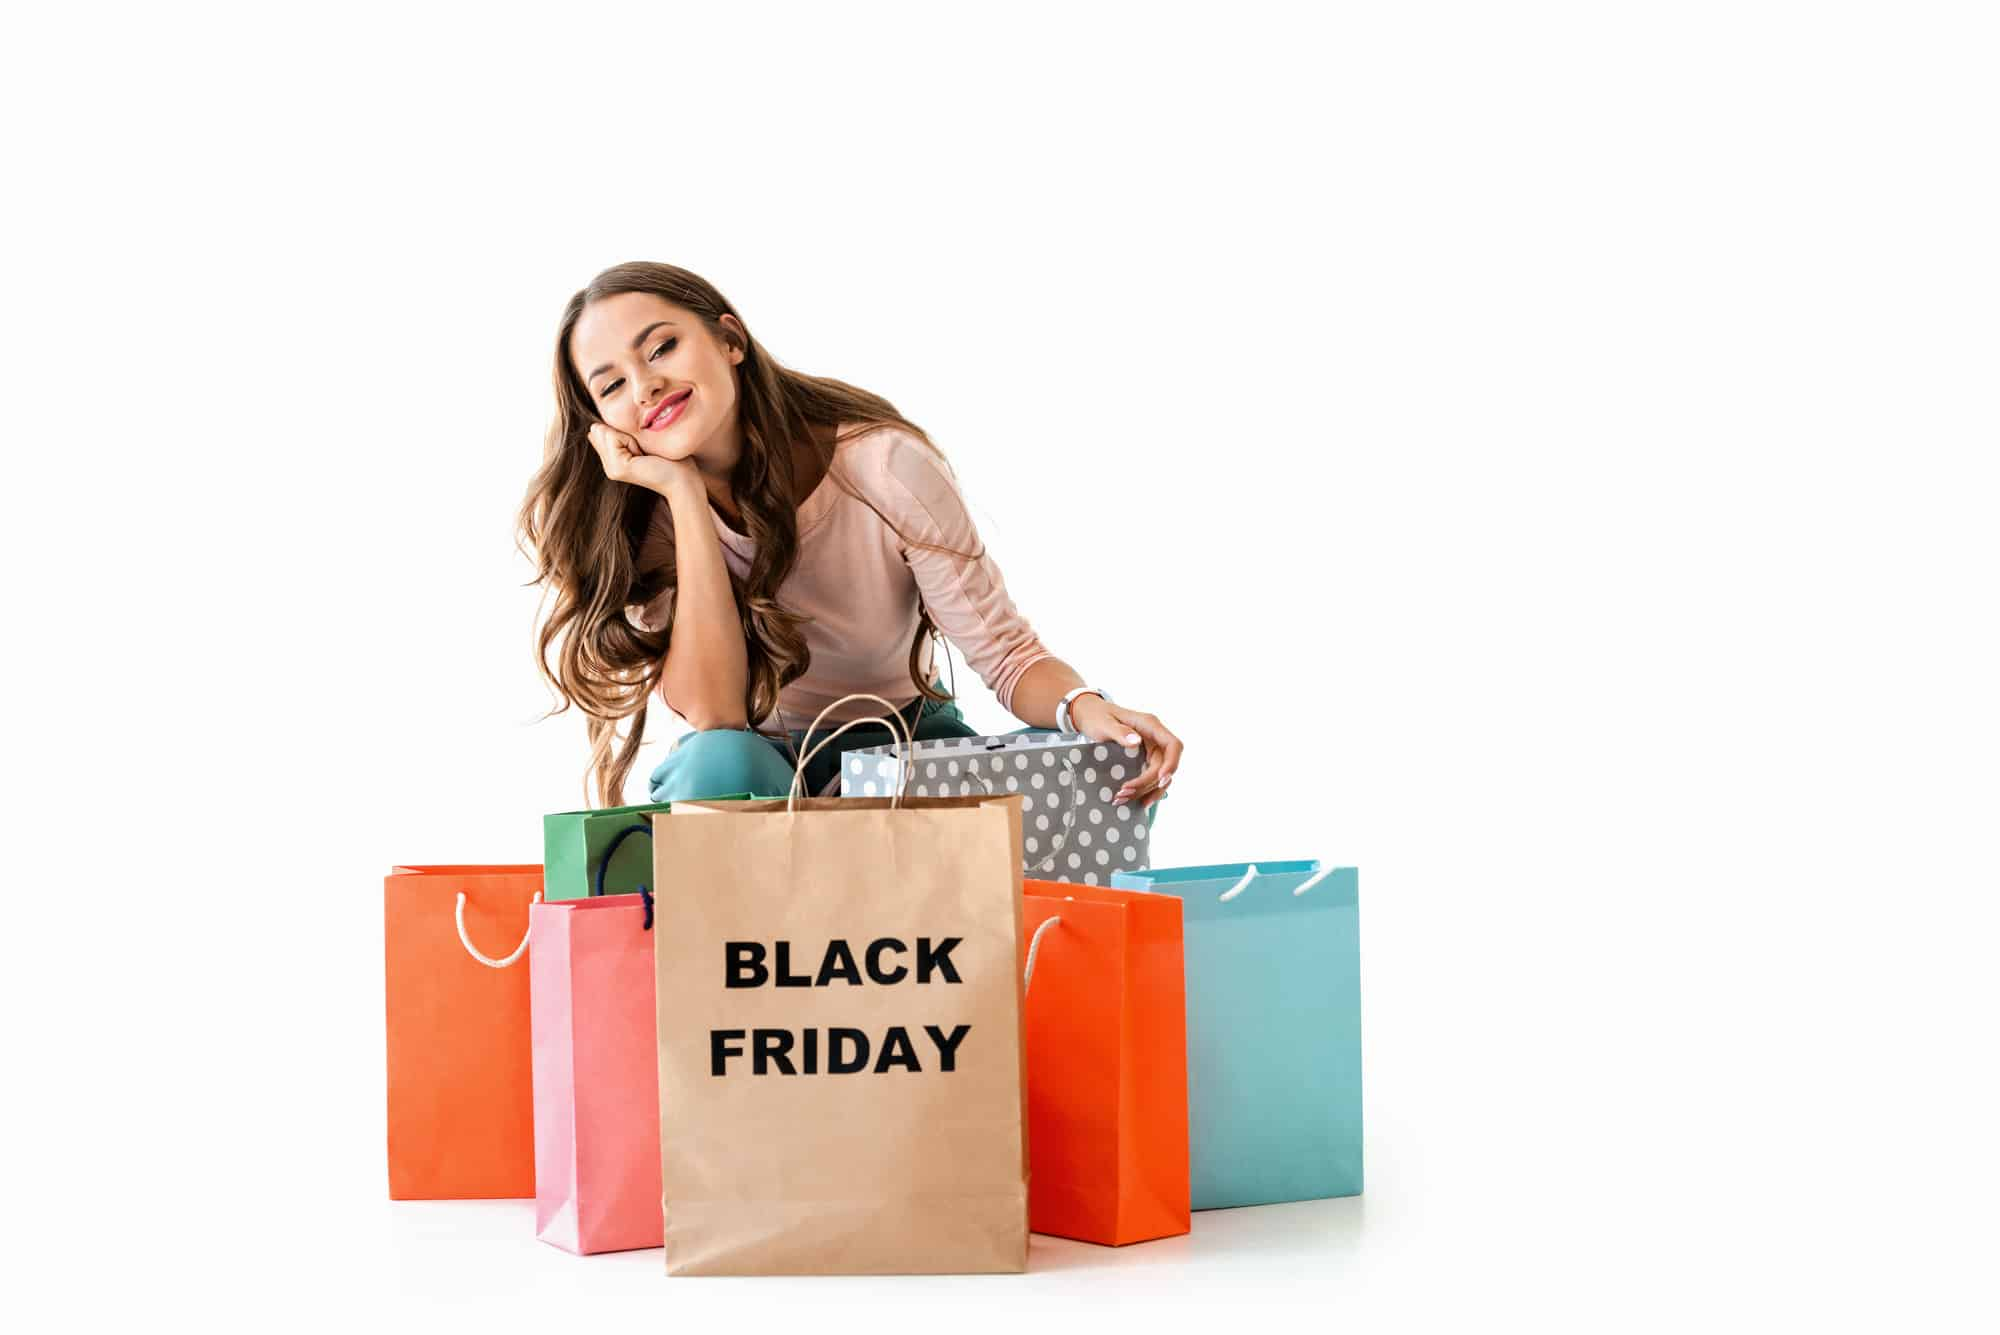 Lady with shopping bags that say Black Friday